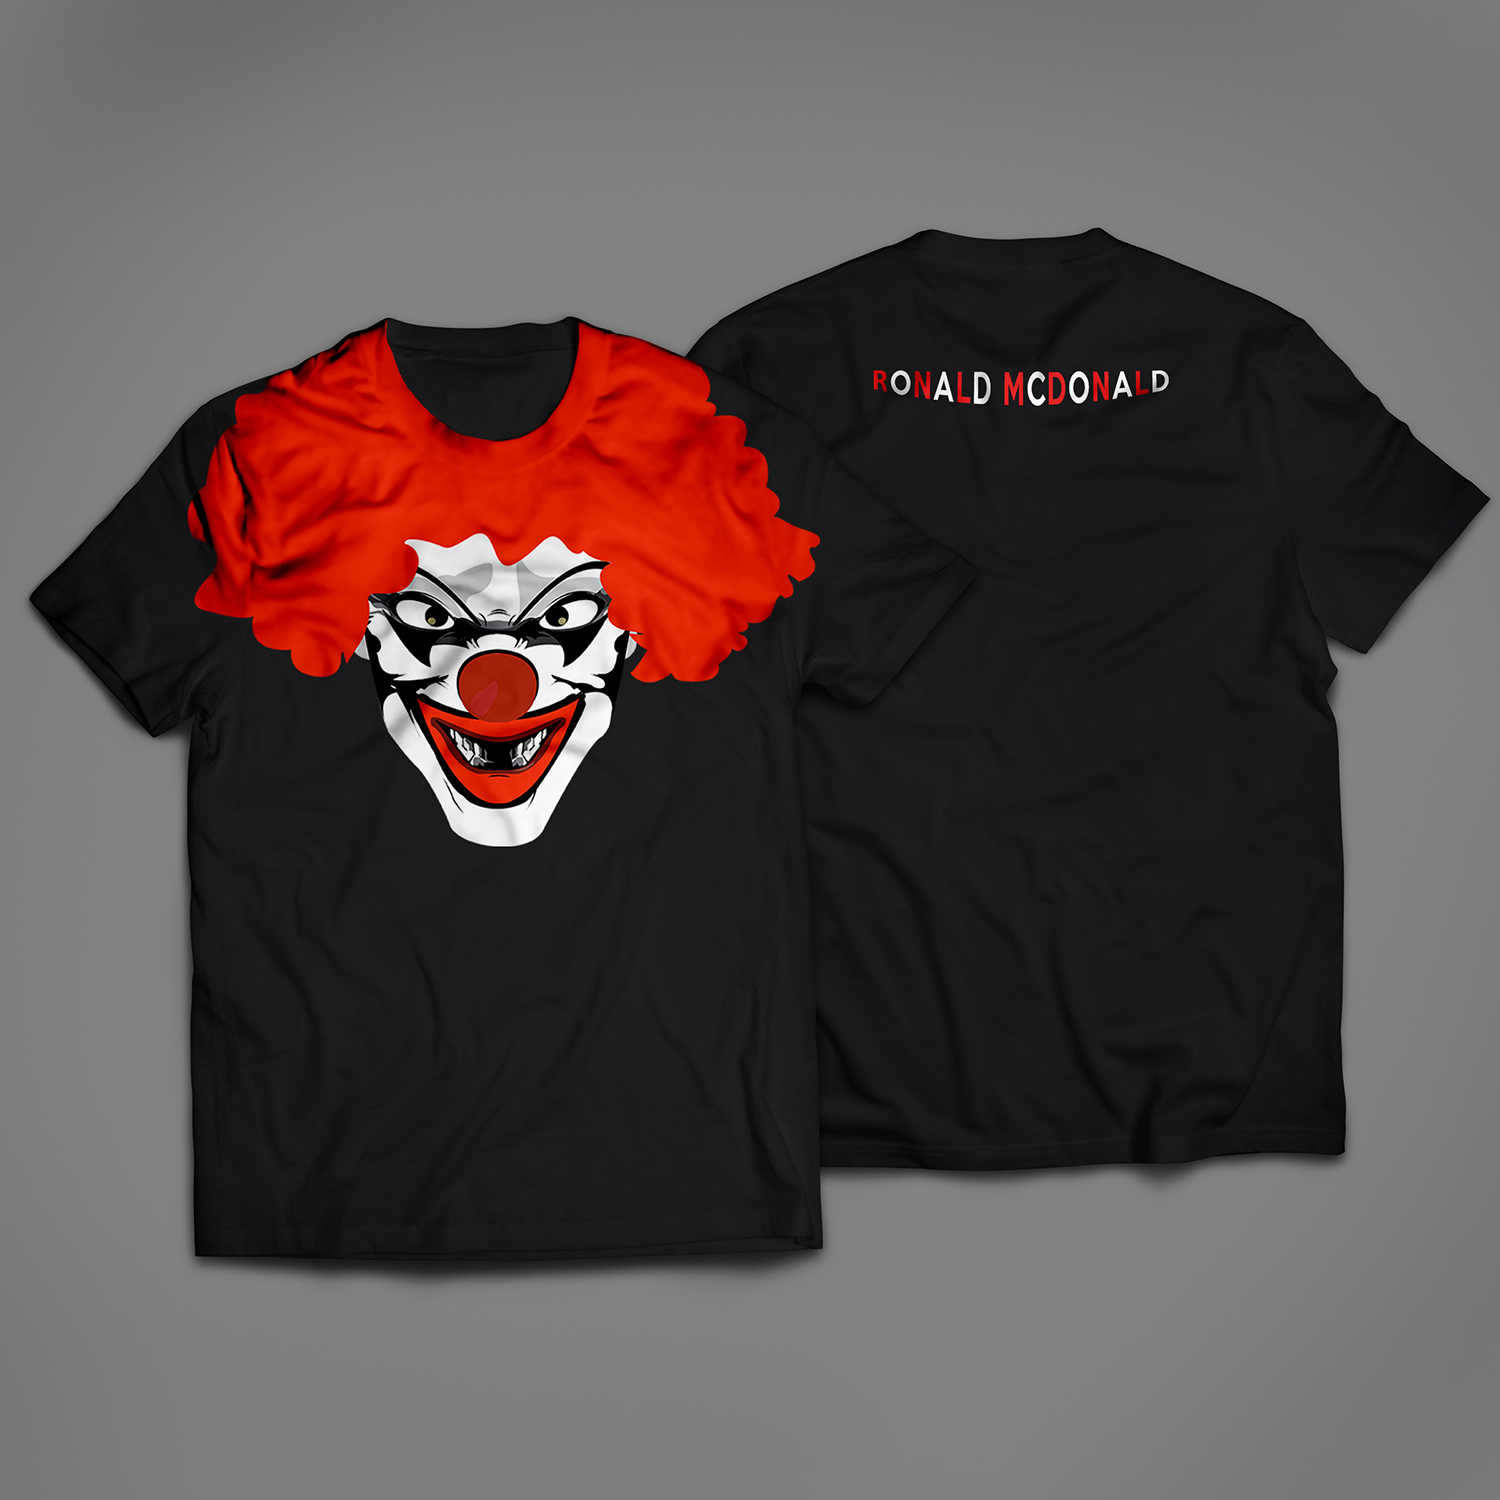 Design t shirt youtube - T Shirt Design By Sharon Chiam For Rackaracka Large Youtube Channel Needs T